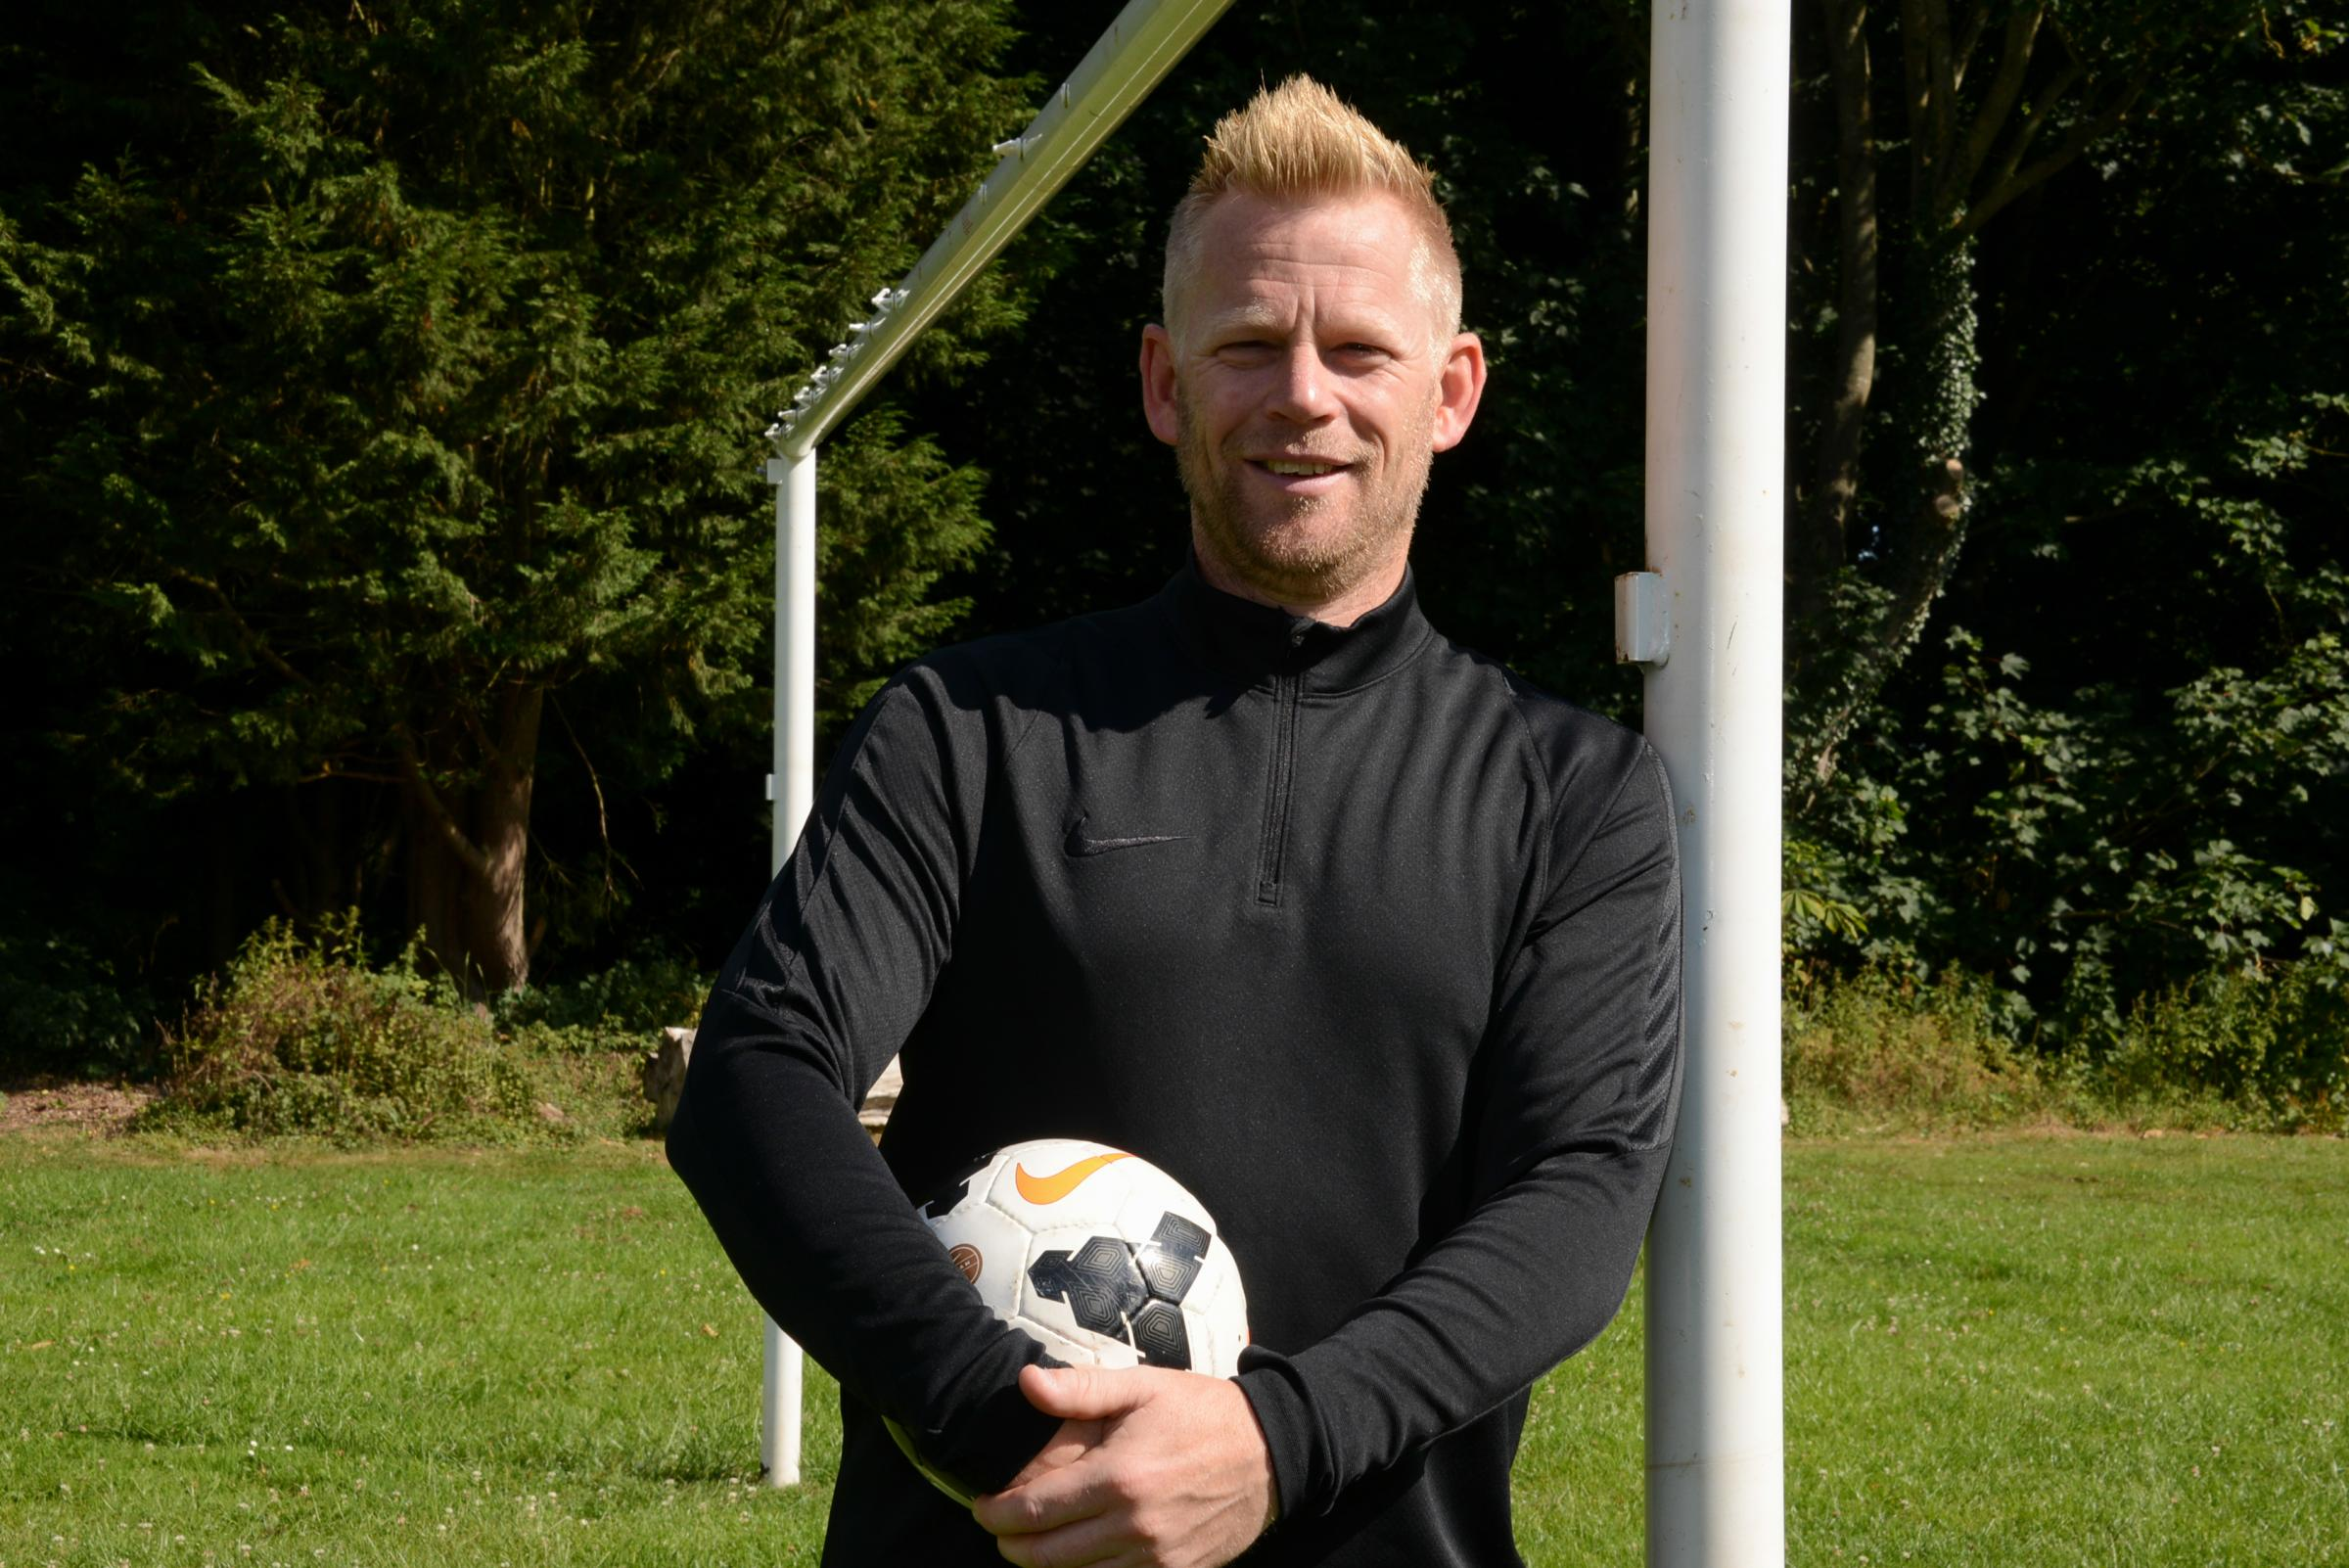 Former Hereford United manager Jamie Pitman was one of many to back the plan for an artificial pitch at Aylestone School.